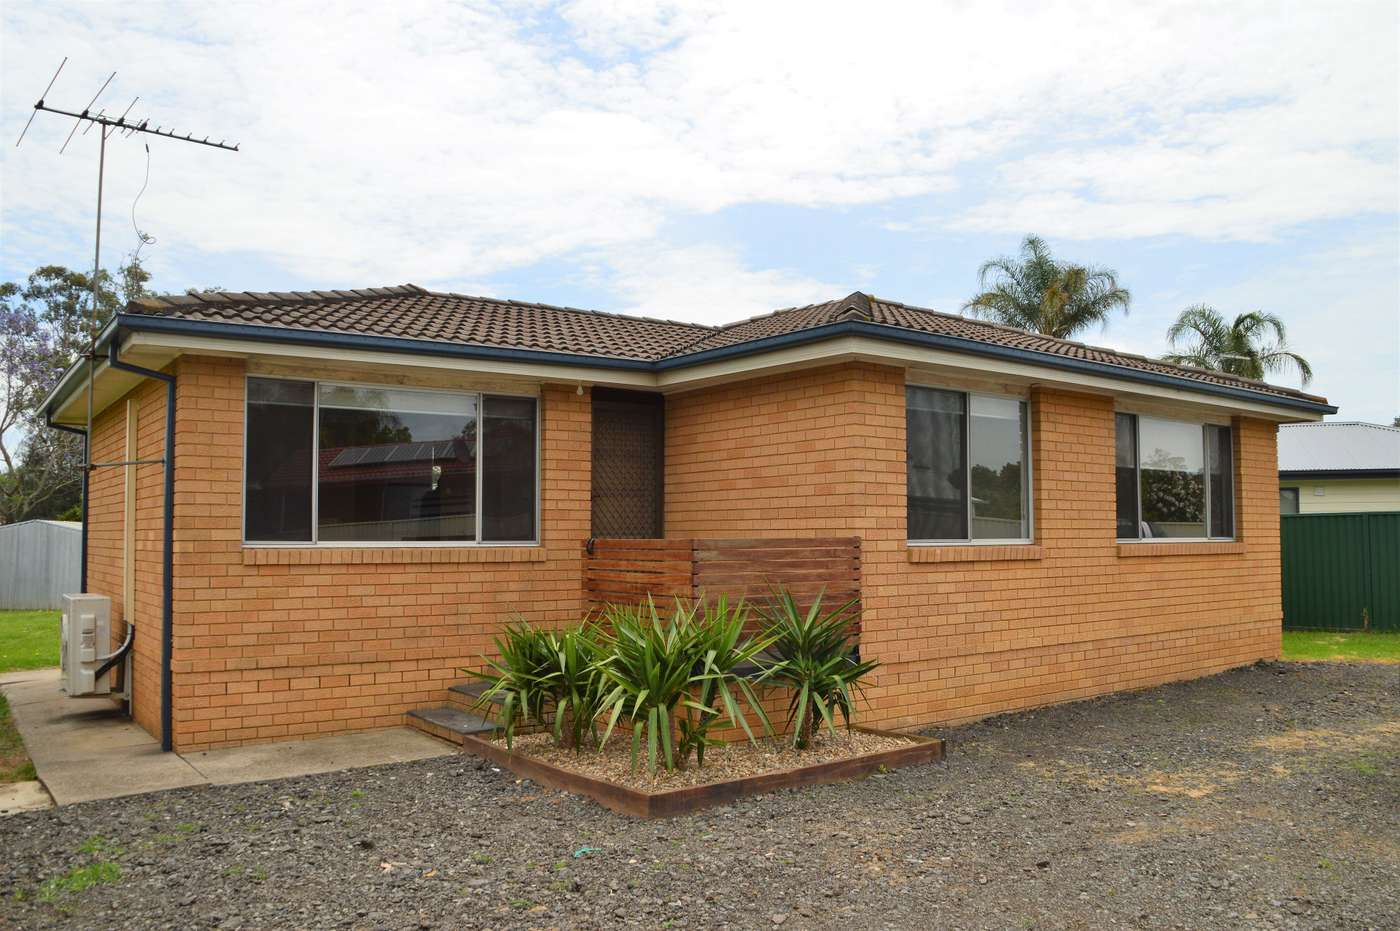 Main view of Homely house listing, 16 Tichborne Drive, Quakers Hill, NSW 2763